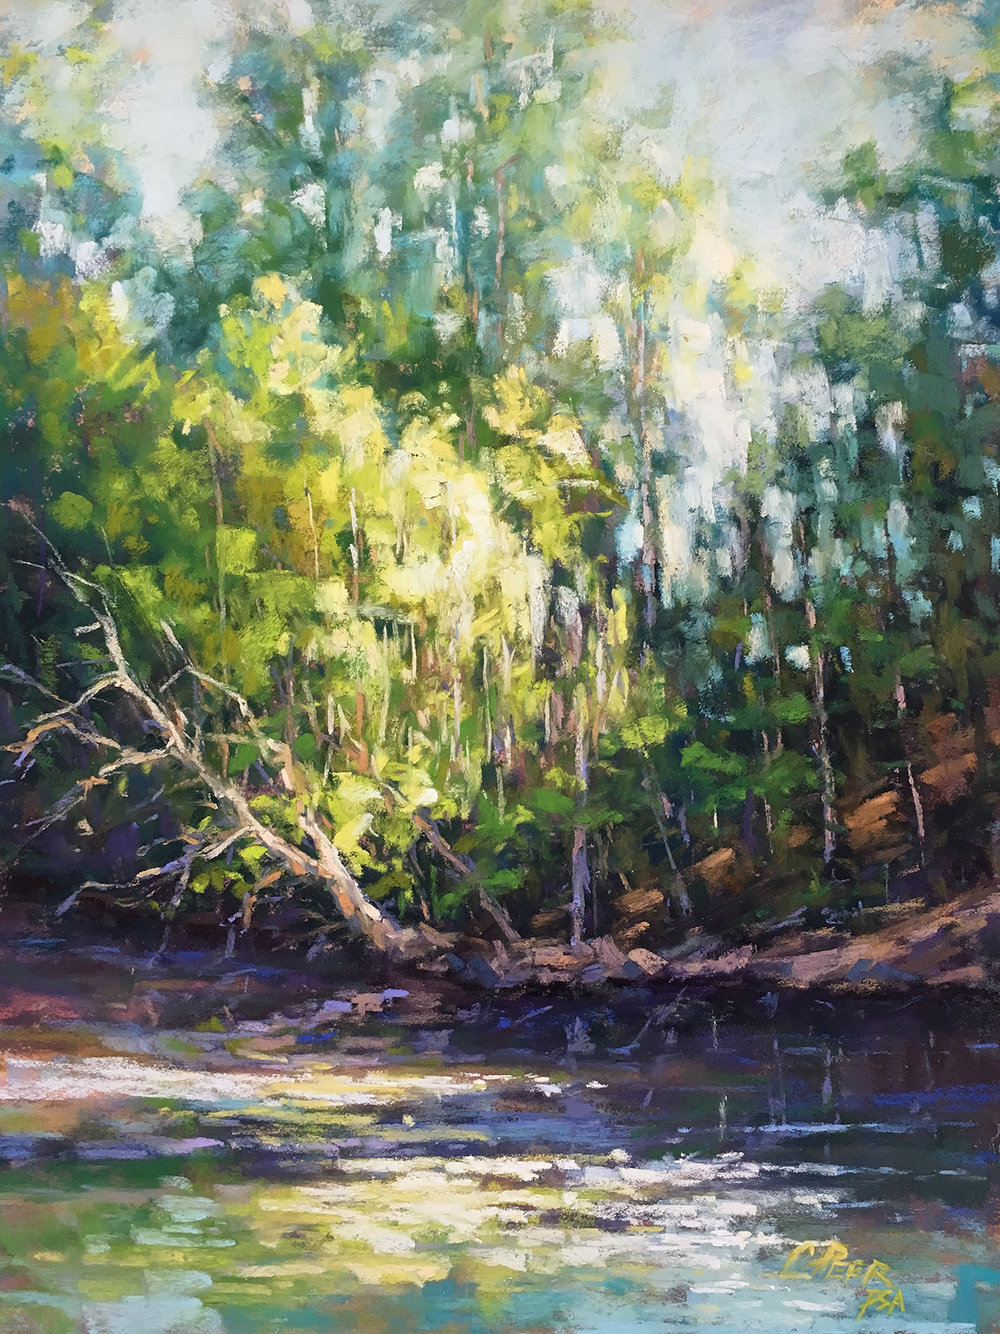 Morning Light on the Creek Bank